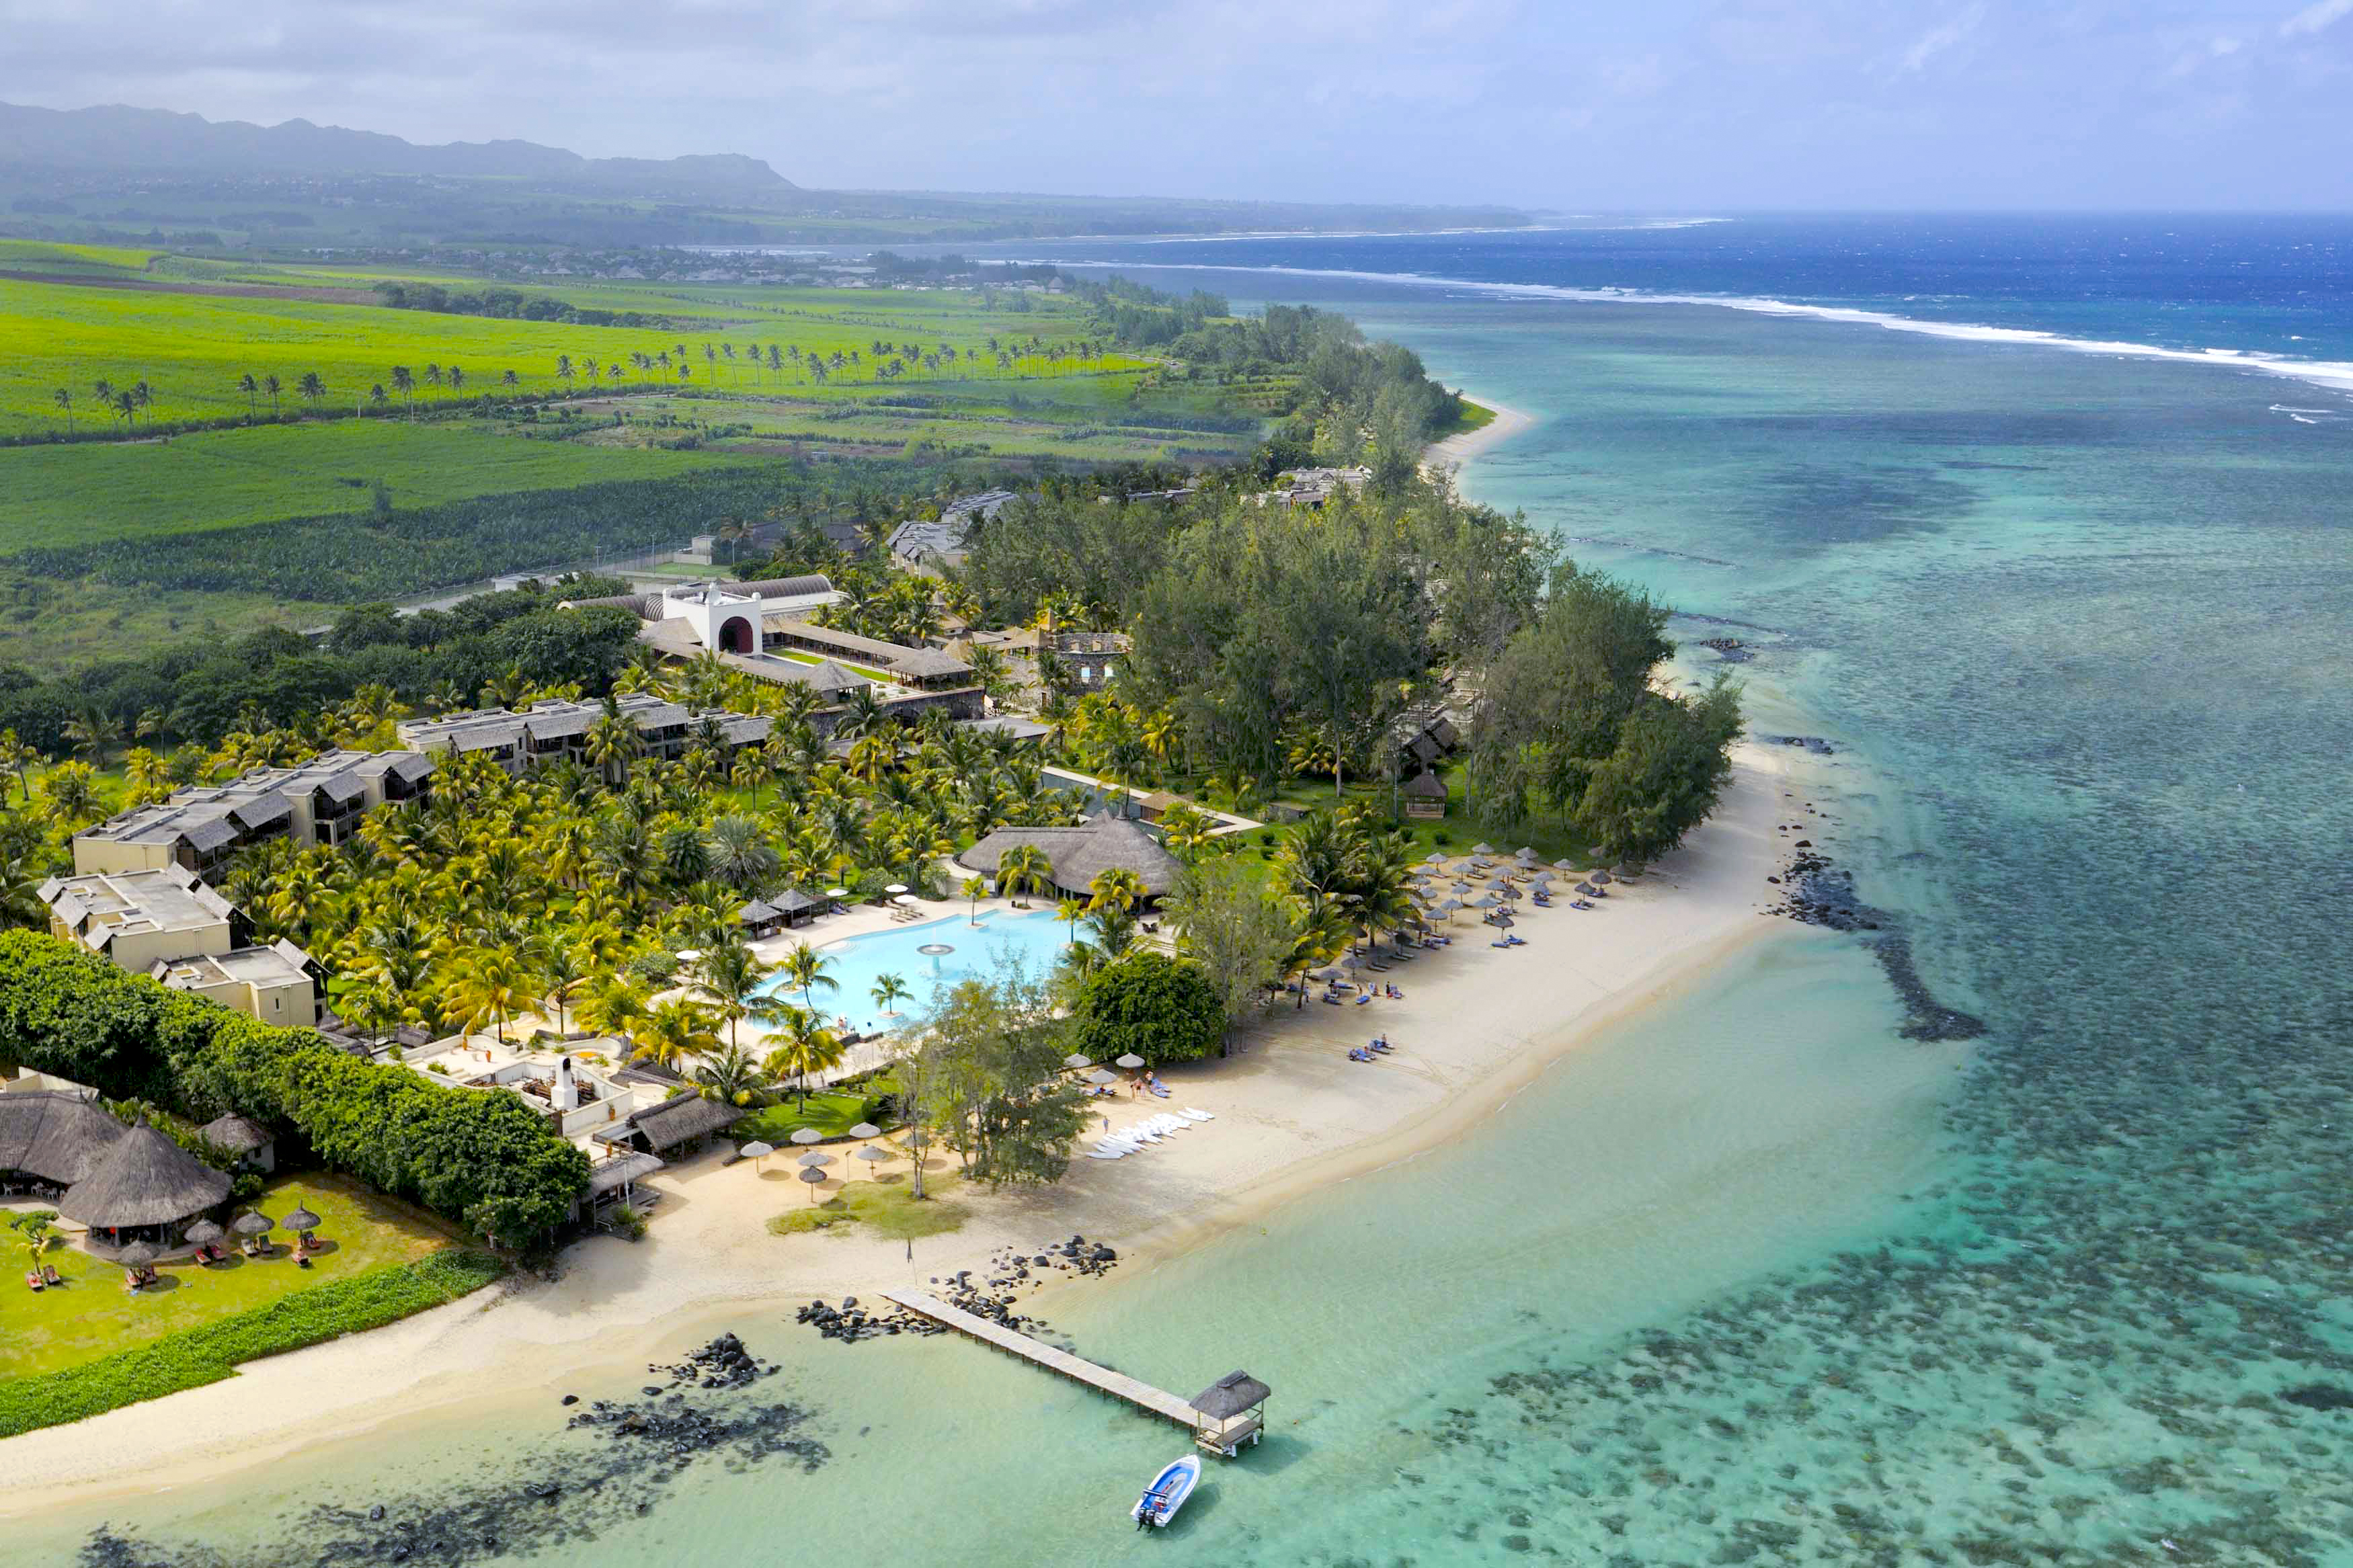 Hotels in mauritius island  : Outrigger Mauritius Resort and Spa